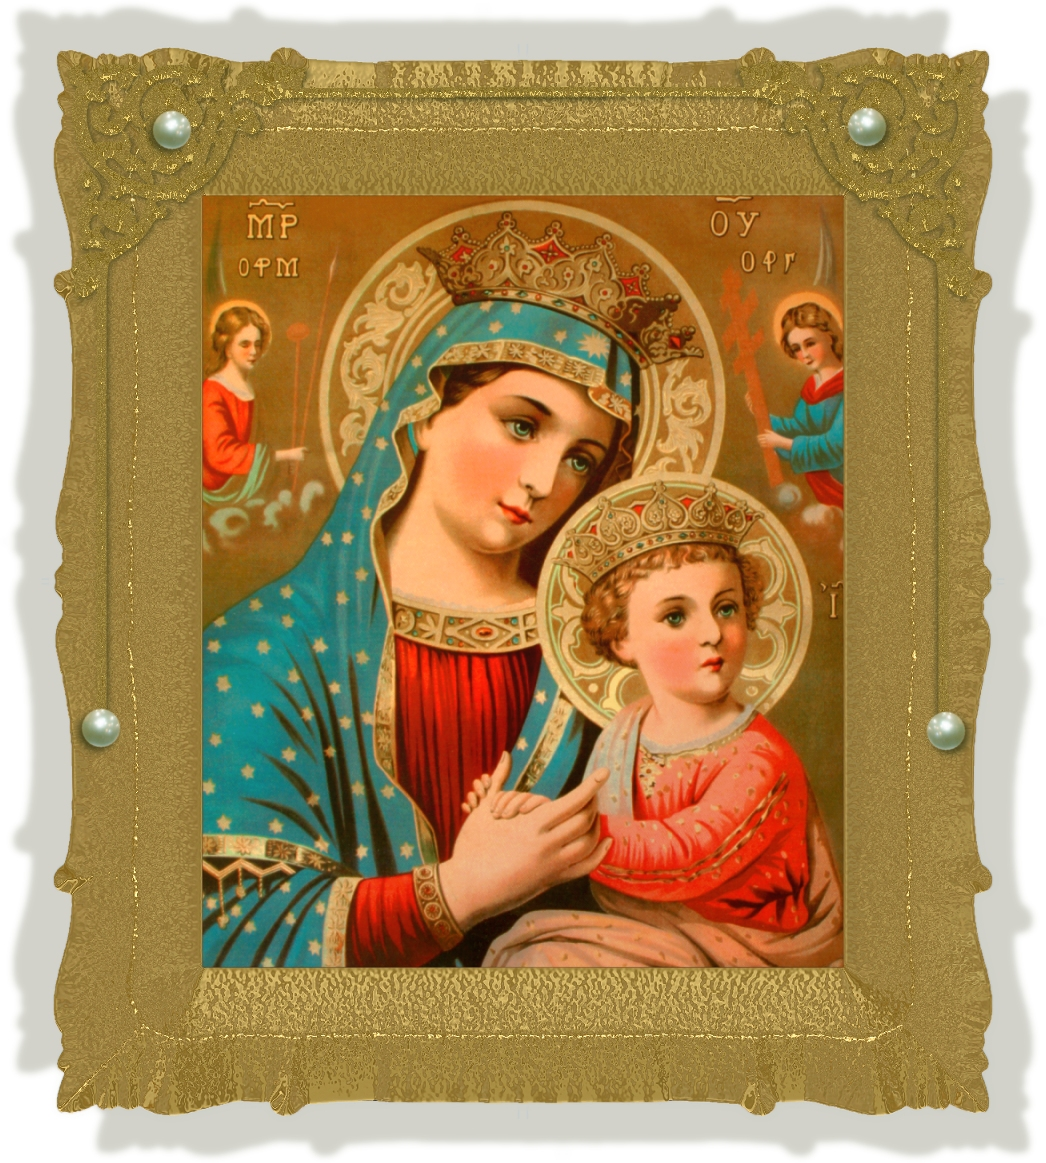 special prayers: our lady of perpetual help